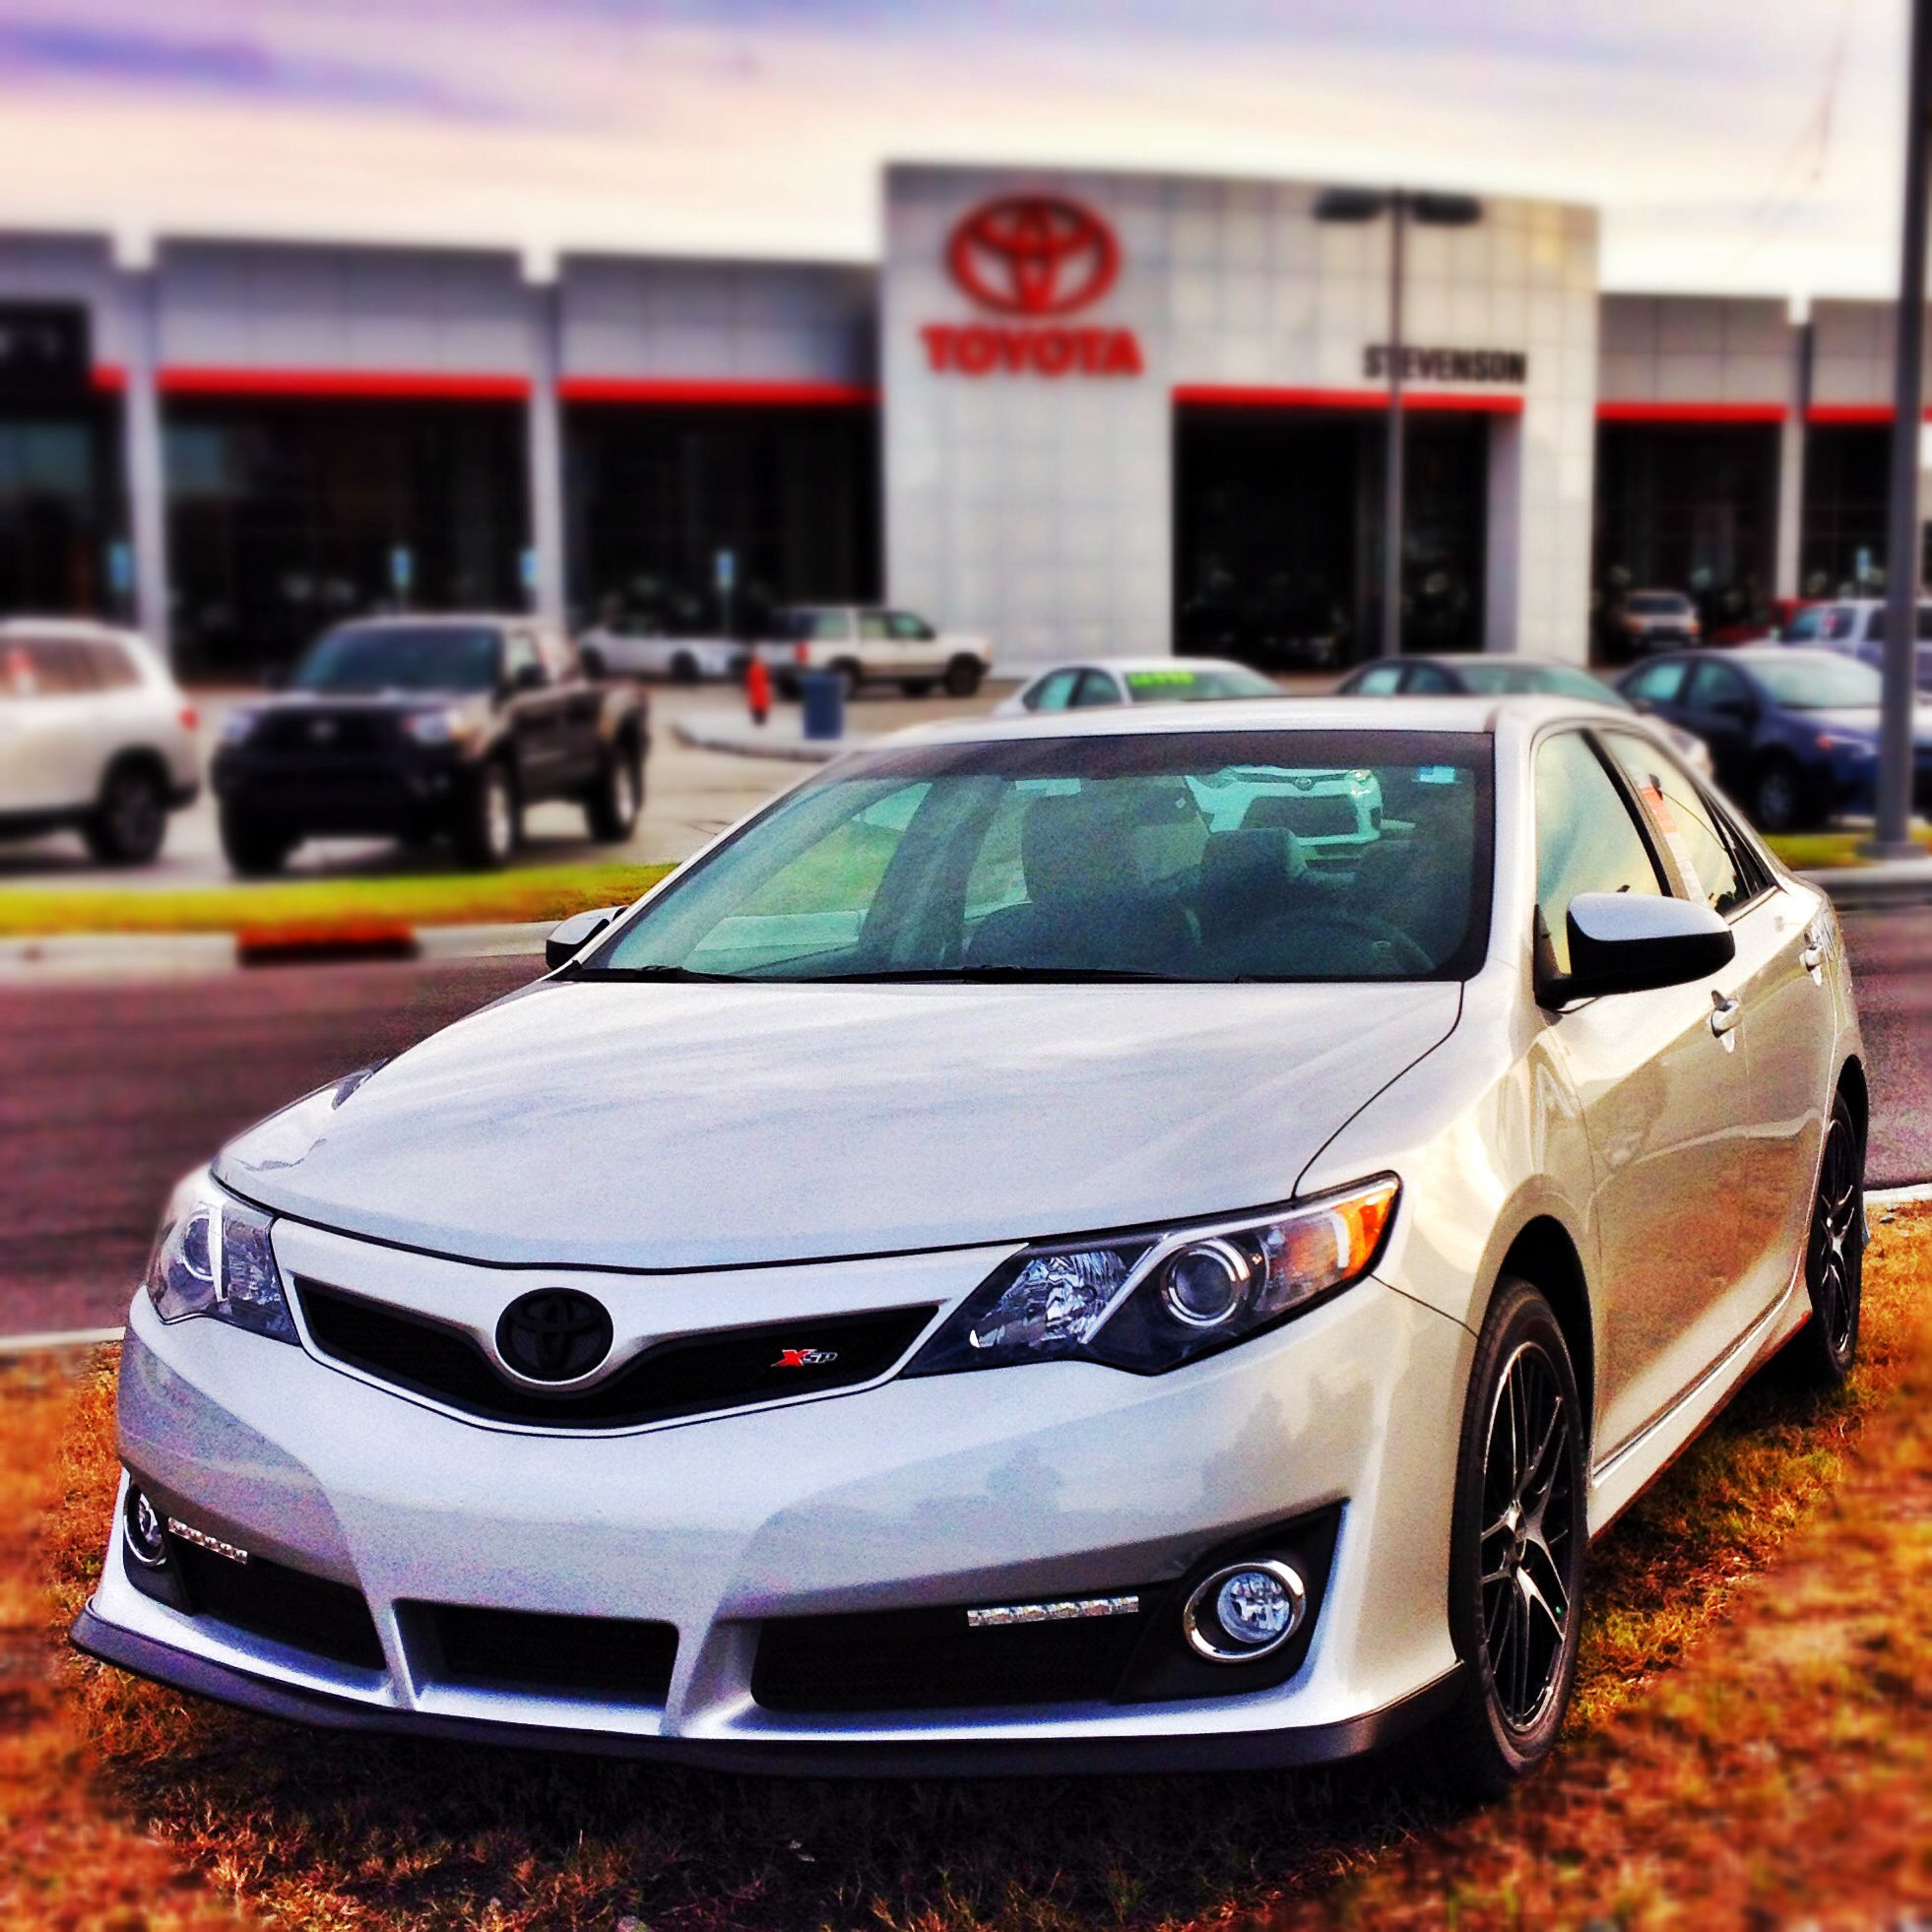 Captivating Toyota Camry XSP In Jacksonville, NC At Stevenson Toyota